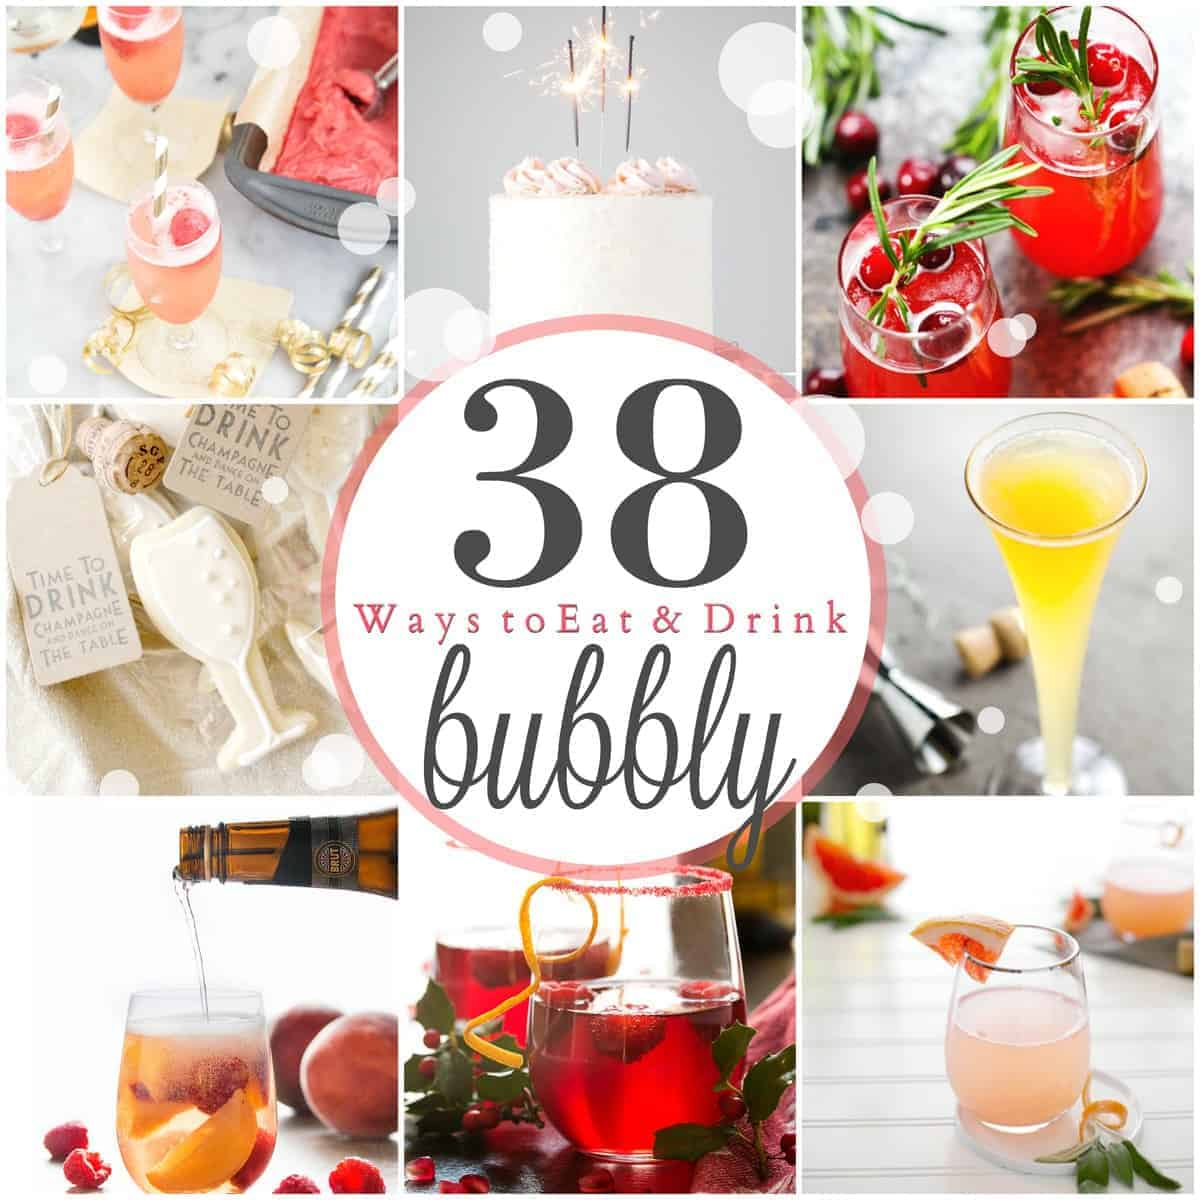 38 Ways to Eat and Drink Bubbly. Add a little sparkle to your New Year's Eve and beyond with this list of 38 food and drink recipes made with champagne, prosecco and cider!